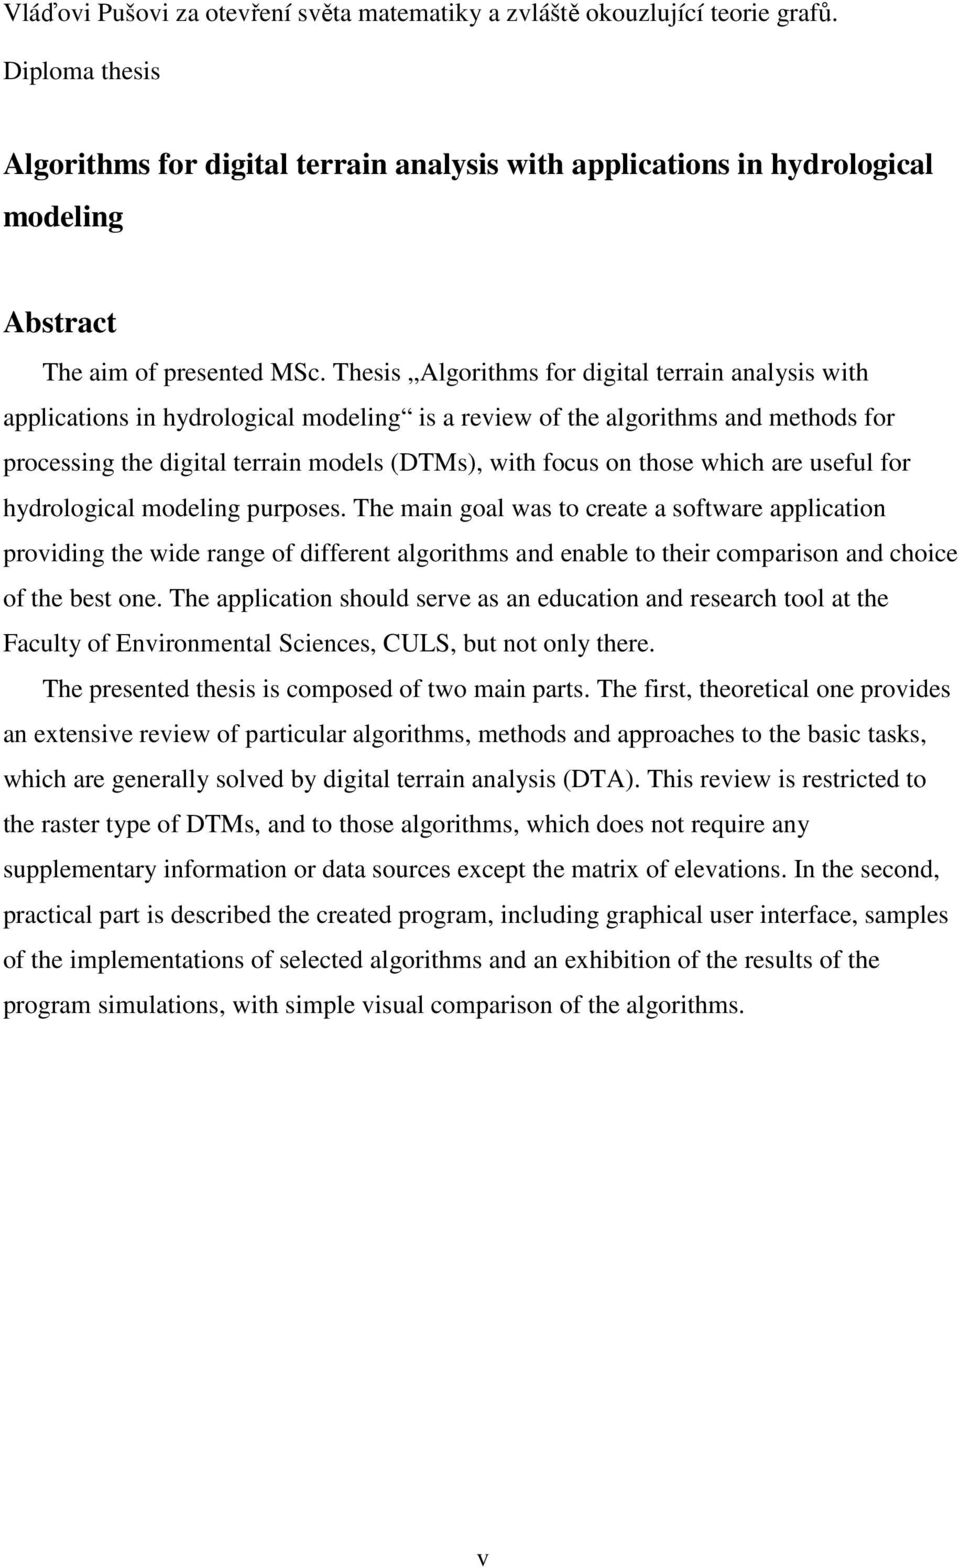 Thesis Algorithms for digital terrain analysis with applications in hydrological modeling is a review of the algorithms and methods for processing the digital terrain models (DTMs), with focus on